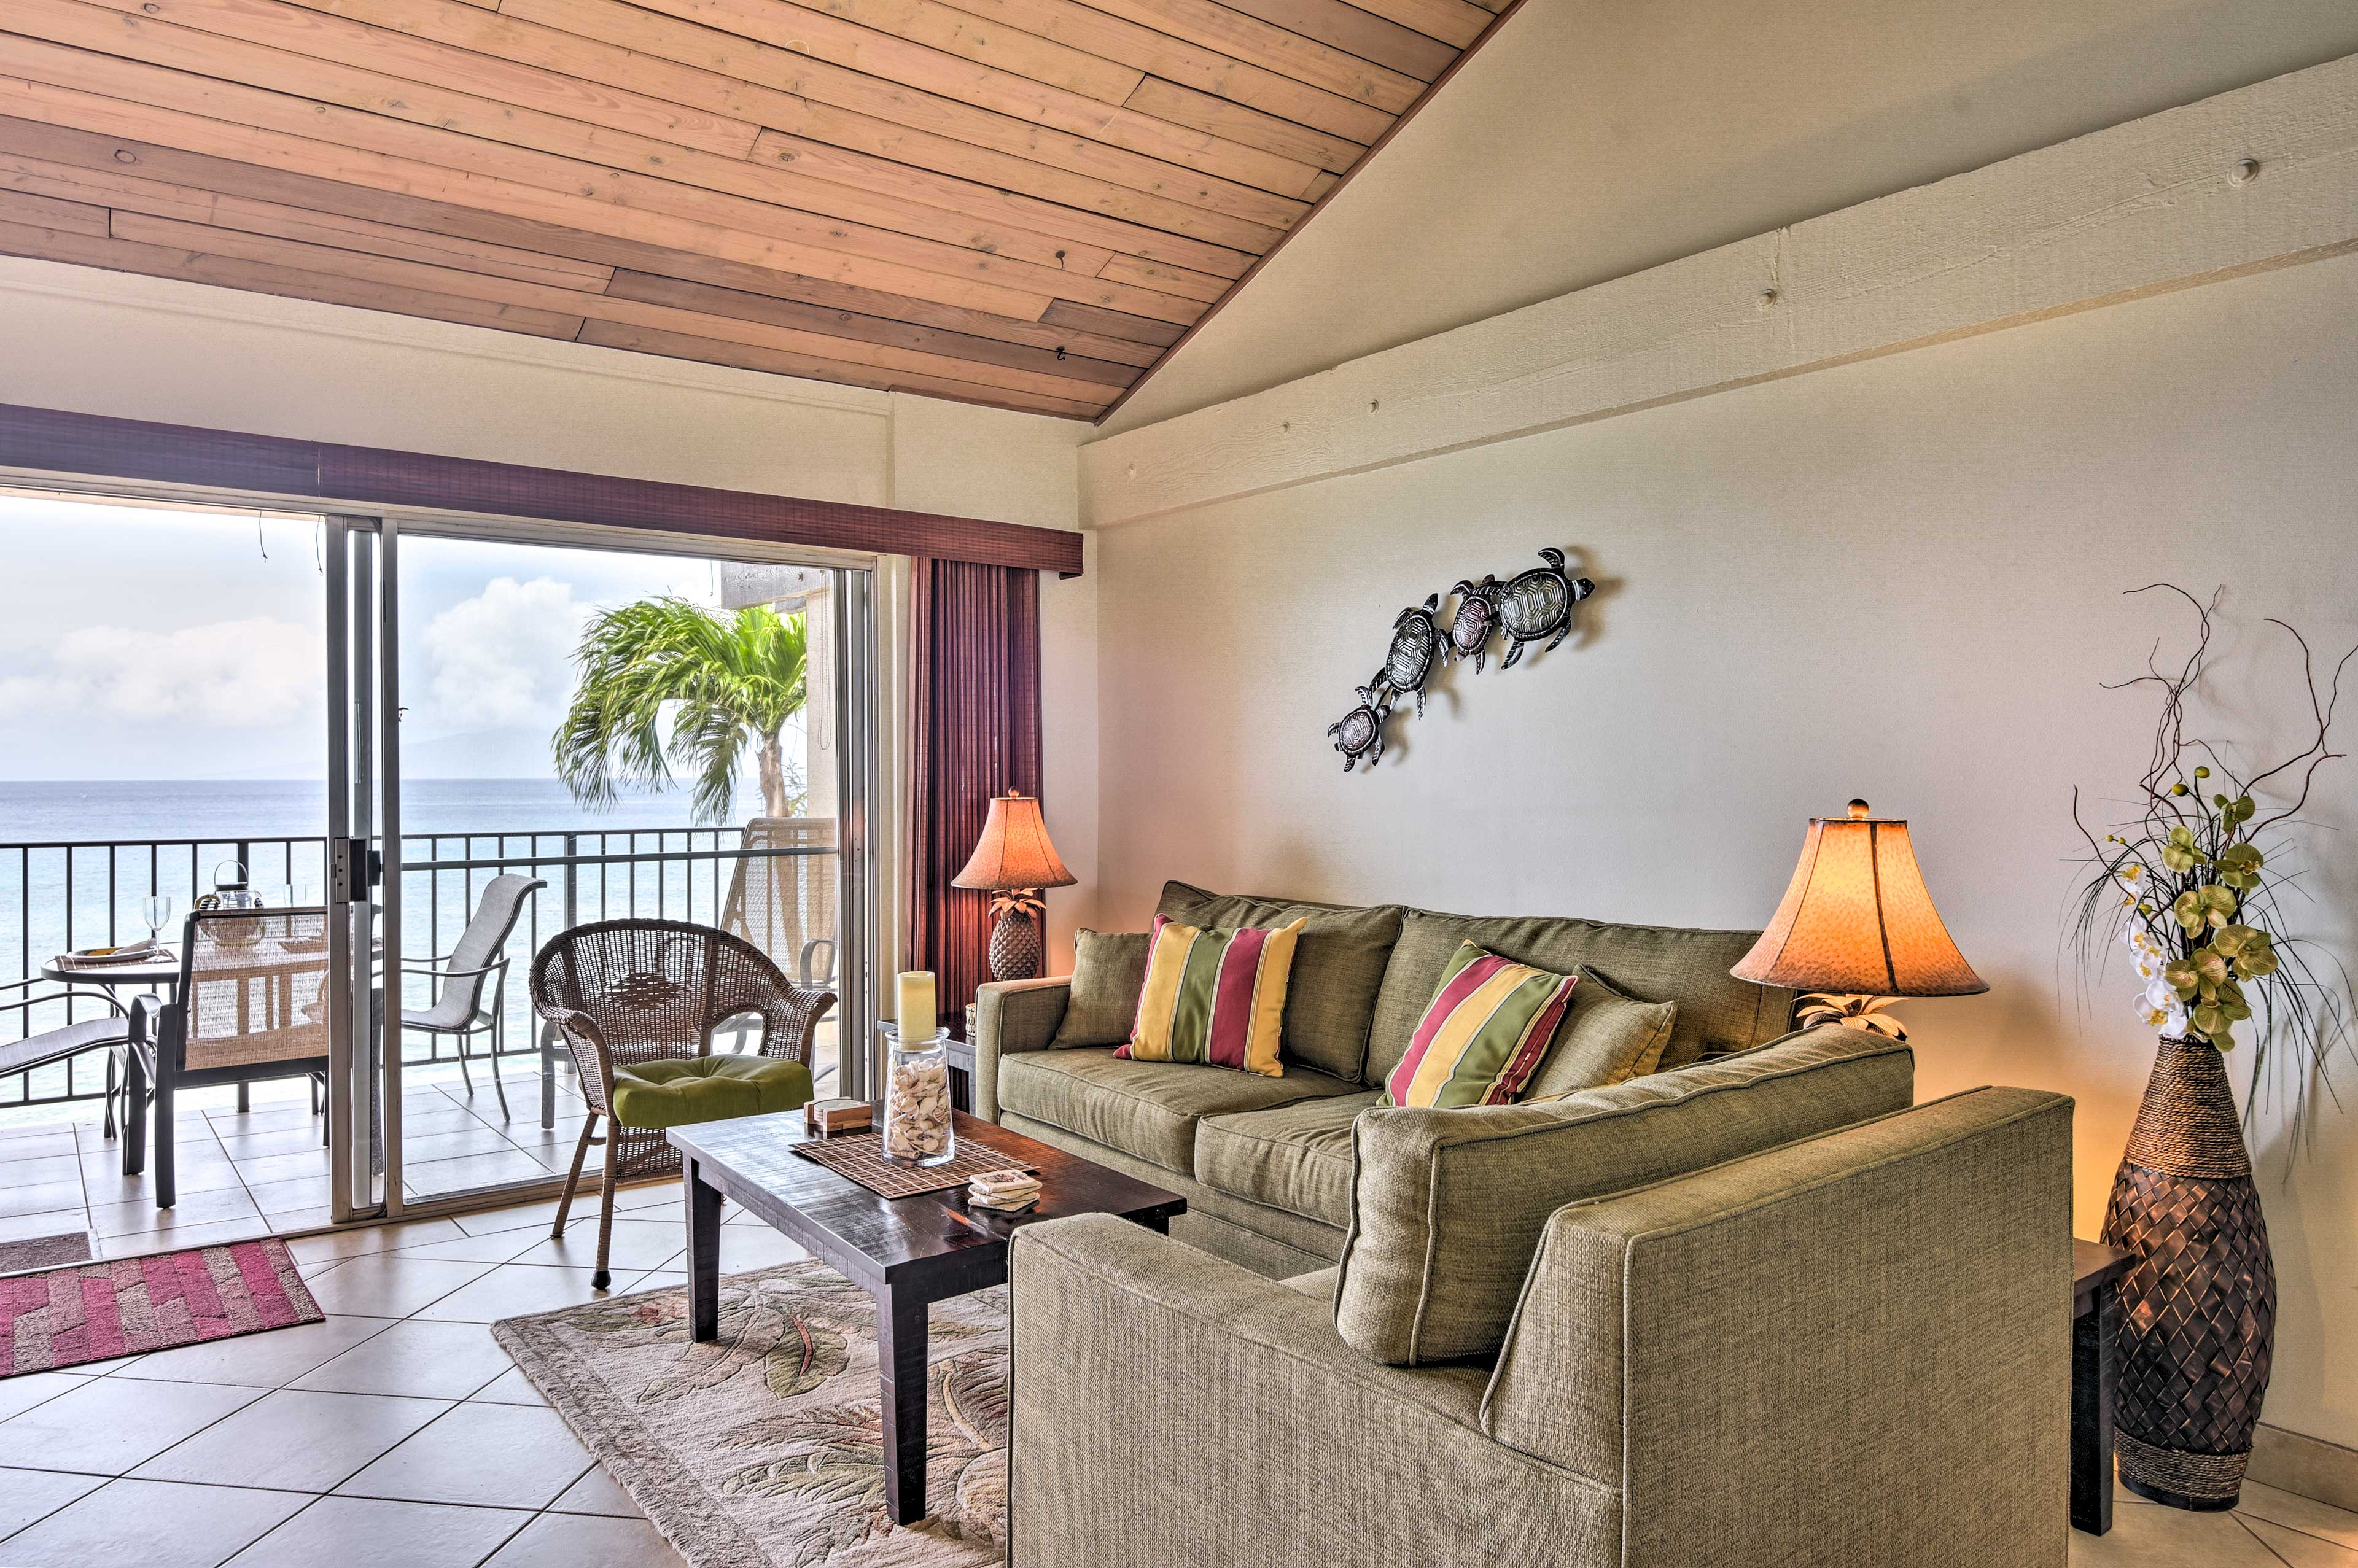 With vaulted ceilings and glass doors to the lanai this space is bright and open.